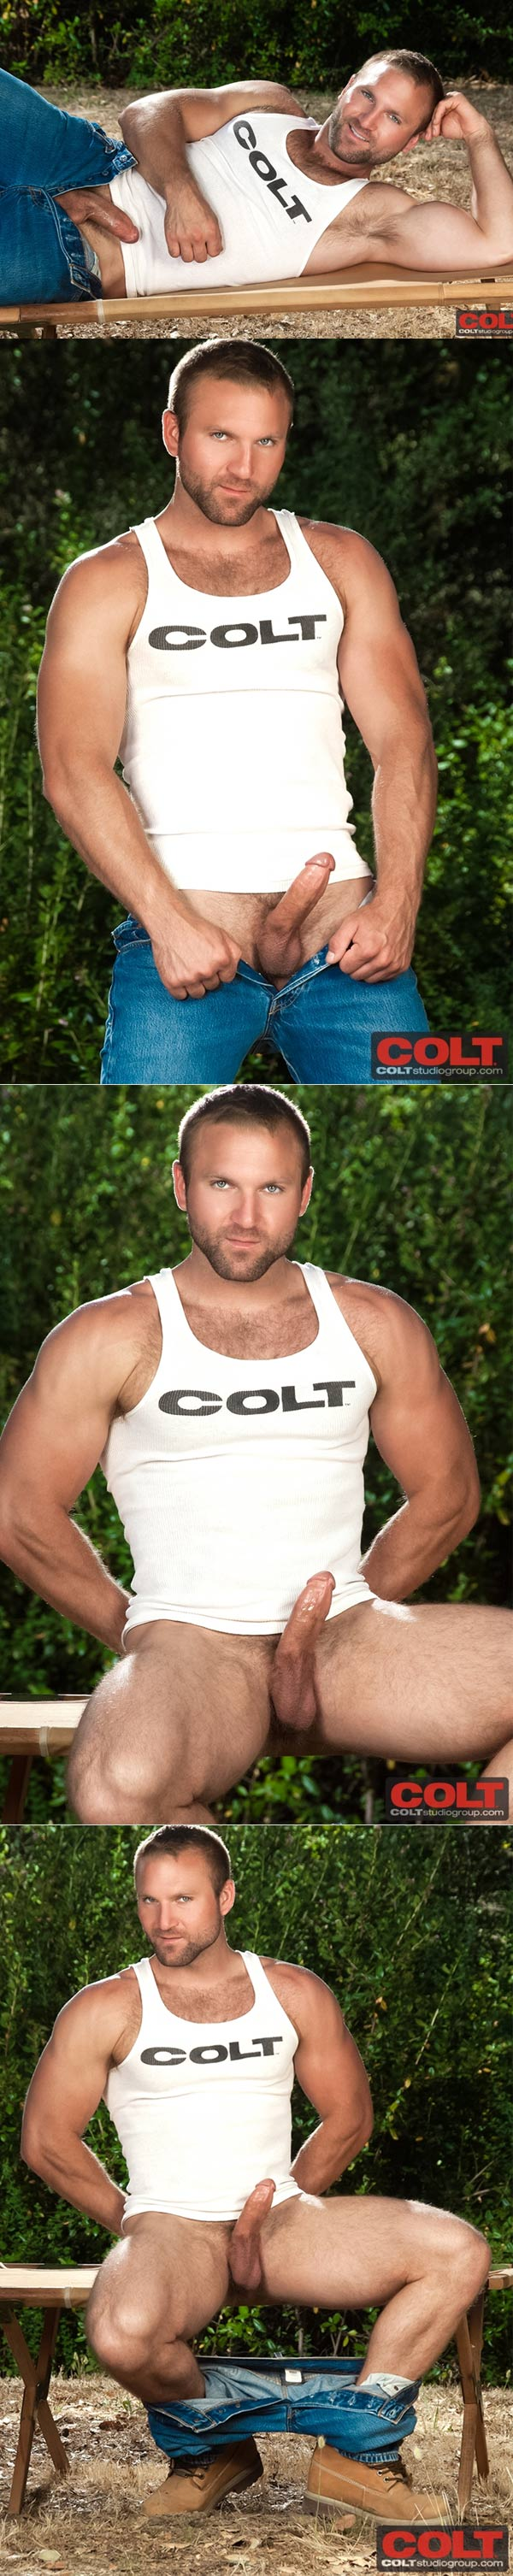 BIG BUCKS (Tom Wolfe) (Scene 3) at ColtStudioGroup.com